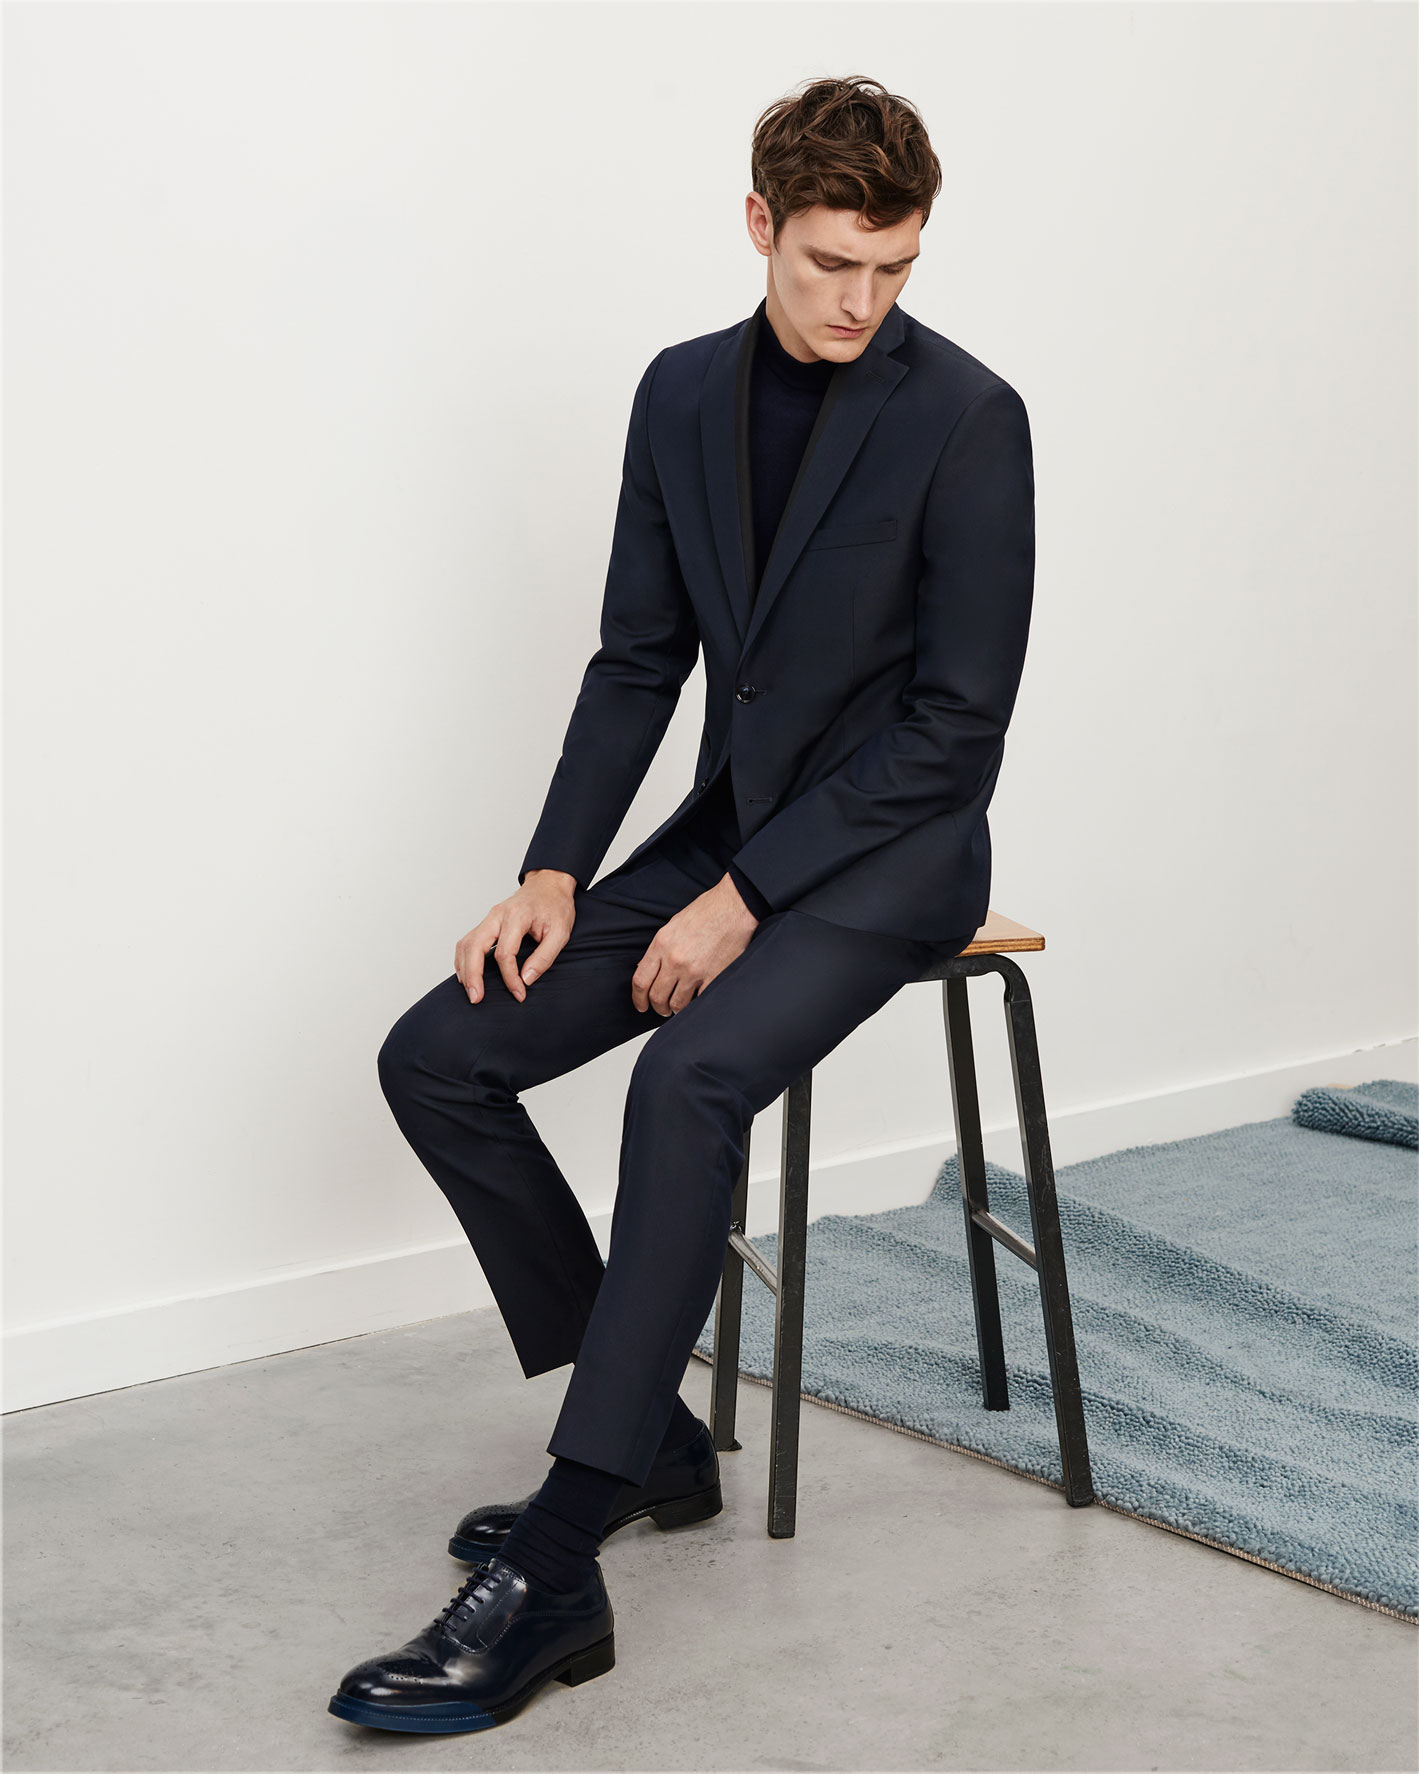 zara men rounds up fall essentials  the fashionisto